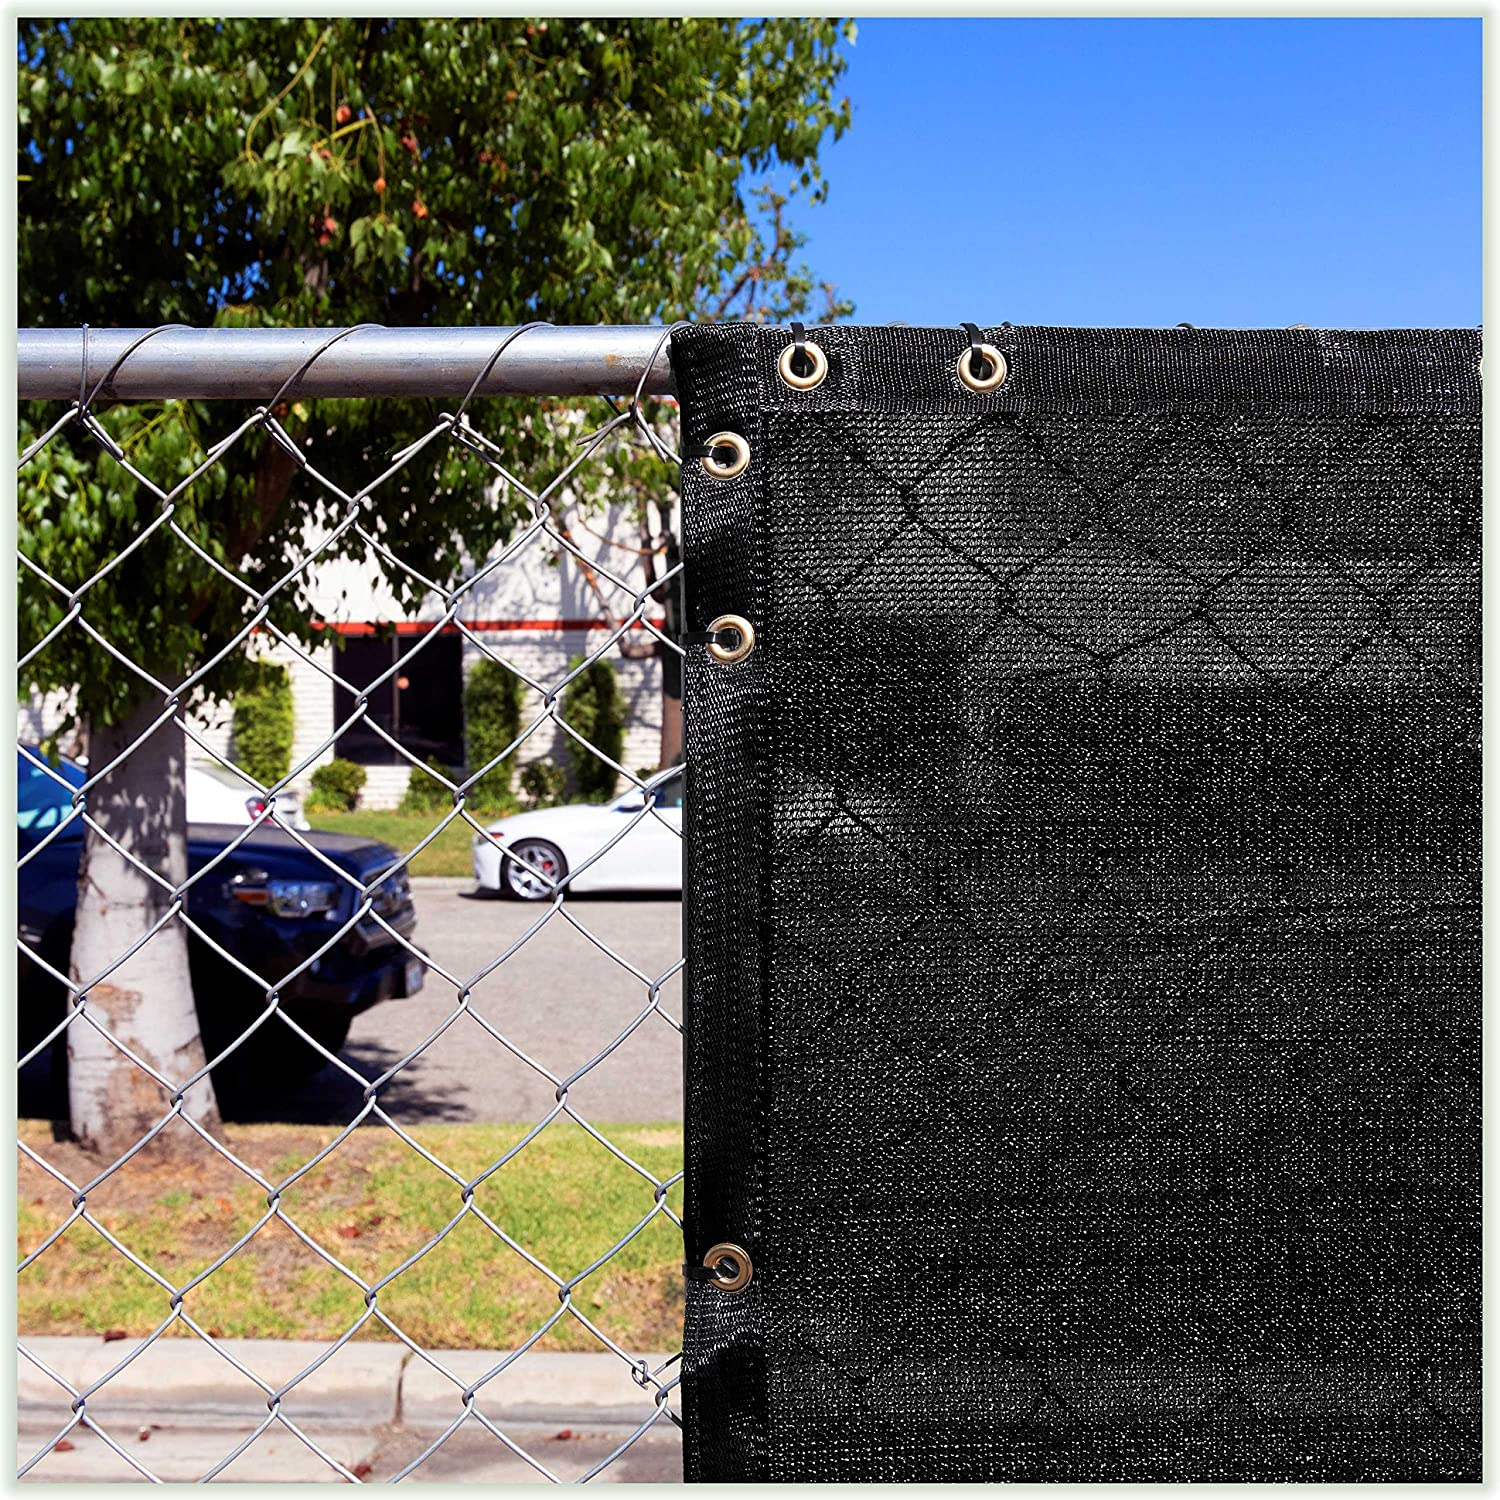 Amazon Com Colourtree 8 X 50 Black Fence Privacy Screen Windscreen Cover Fabric Shade Tarp Plant Greenhouse Netting Mesh Cloth Commercial Grade 170 Gsm Heavy Duty 3 Years Warranty